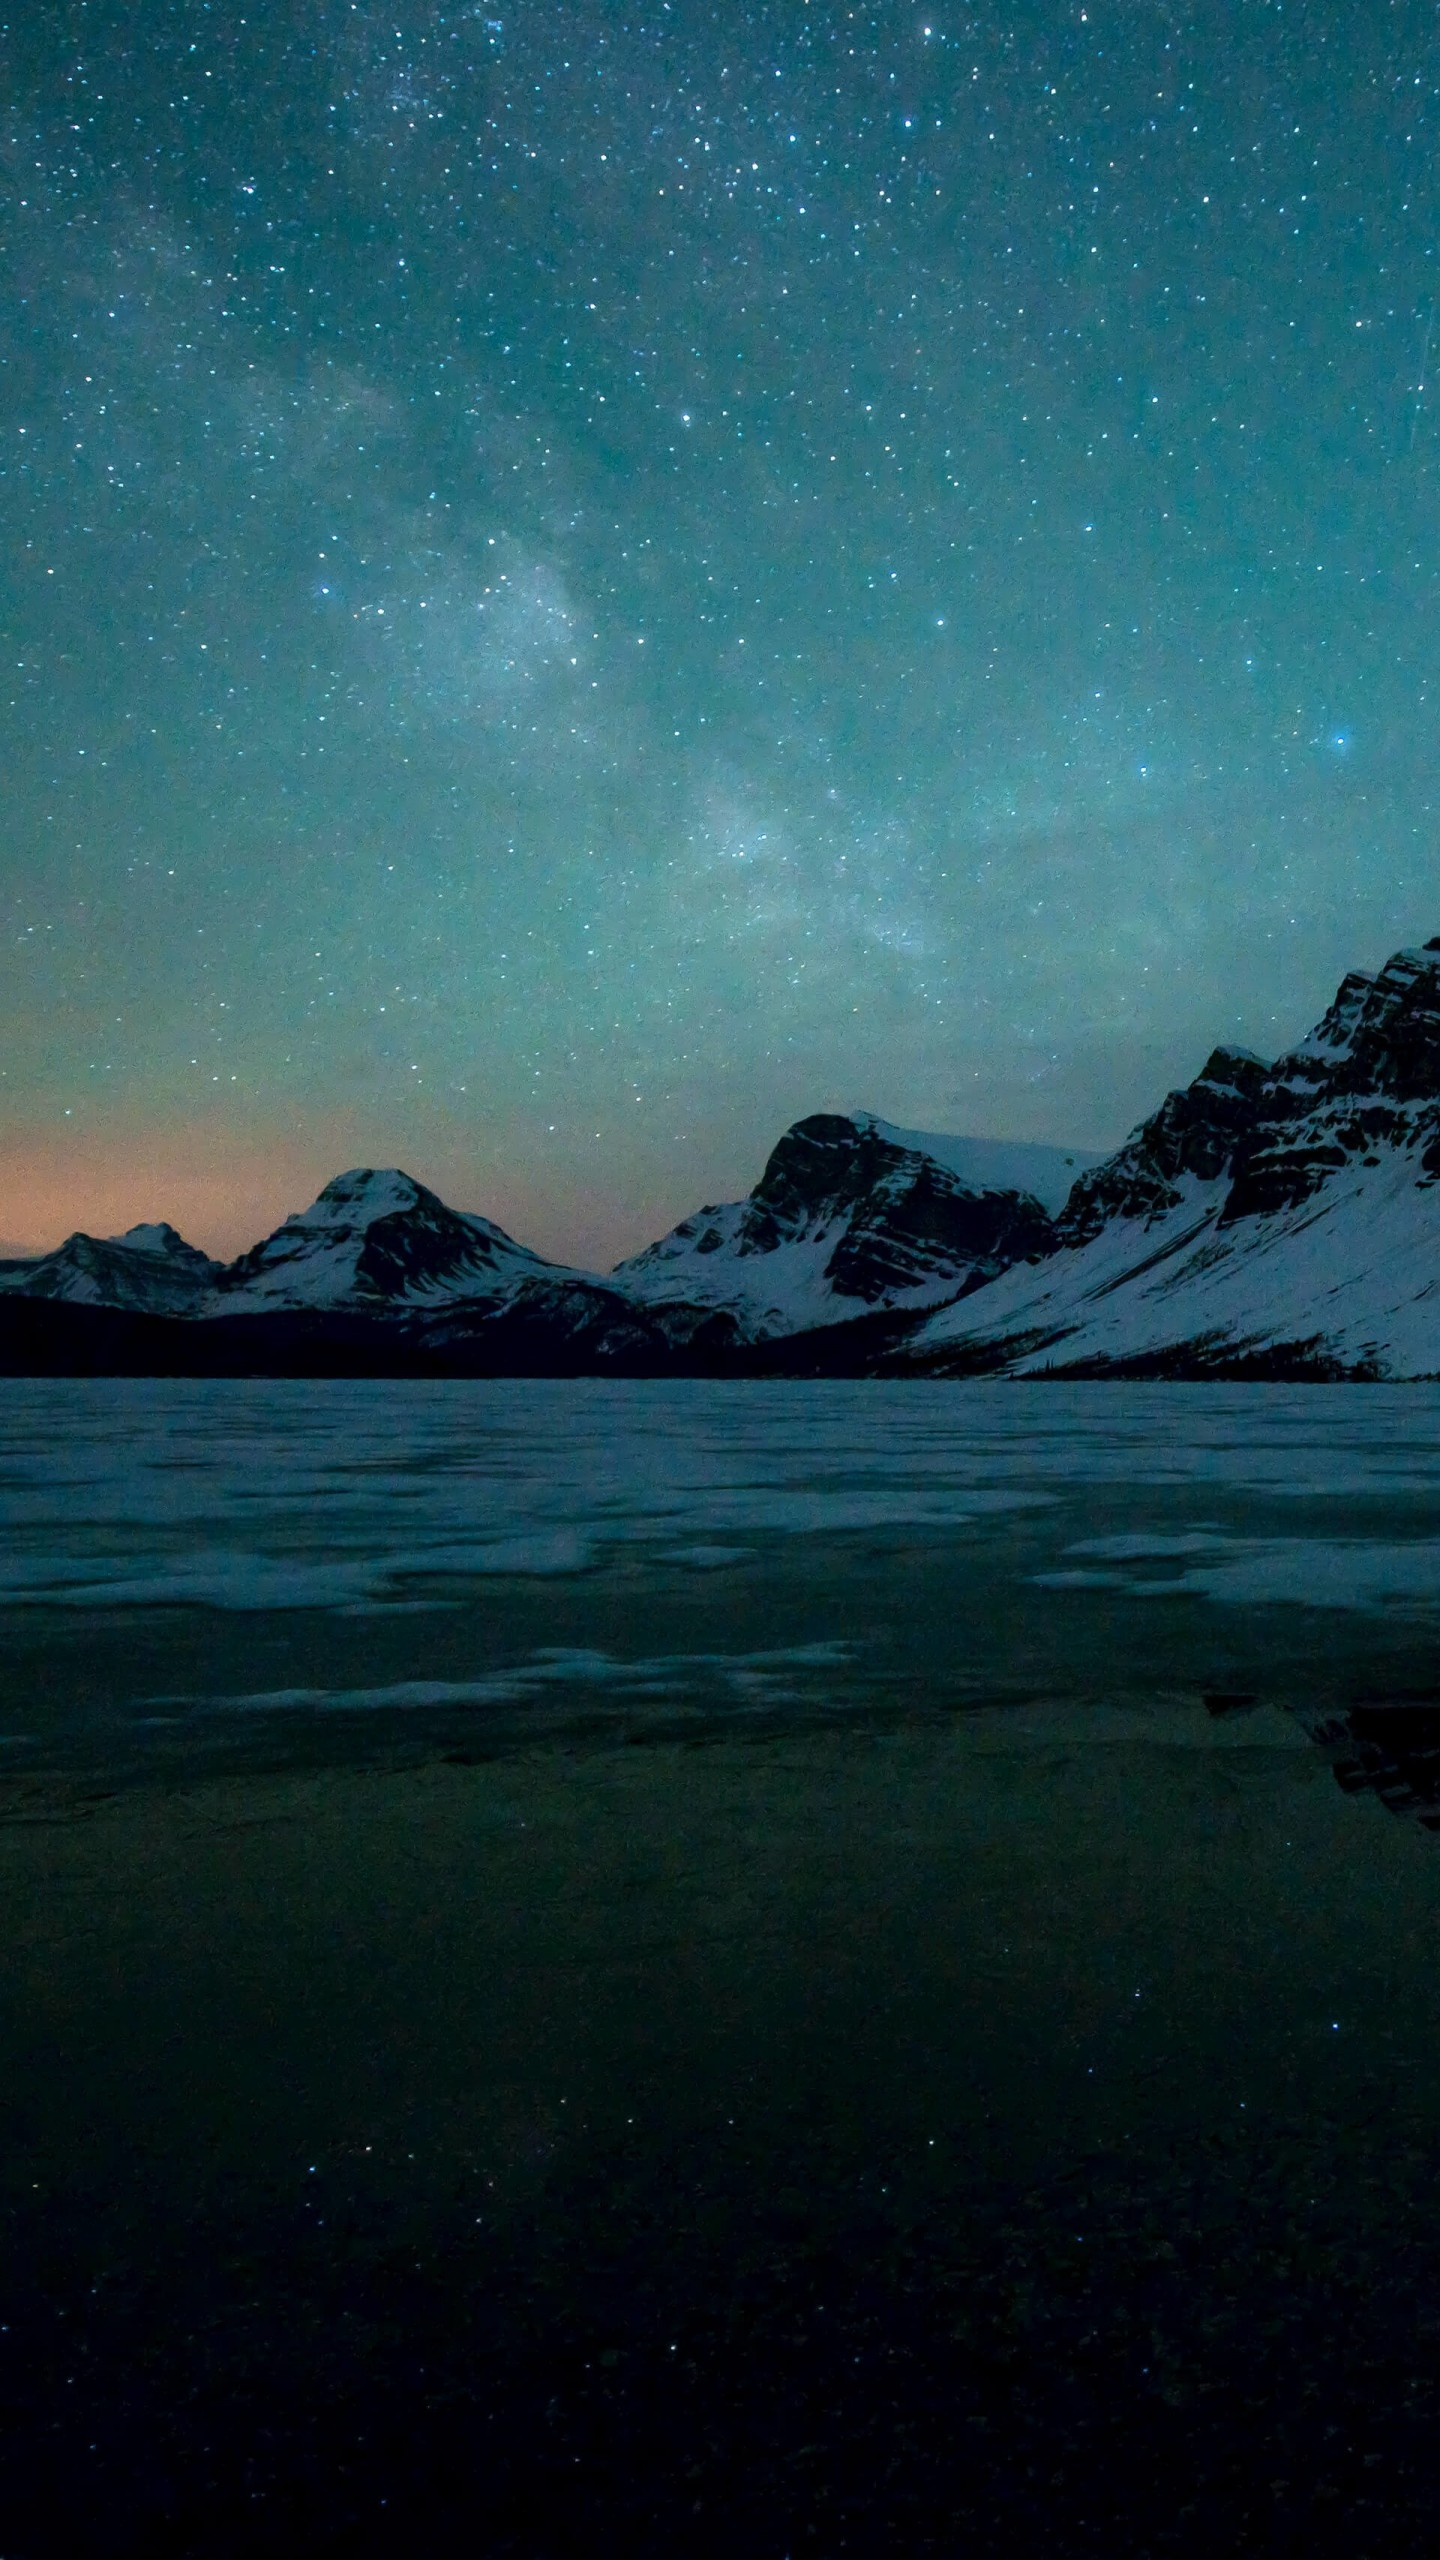 Milky Way over Bow Lake, Alberta, Canada Wallpaper for LG G3